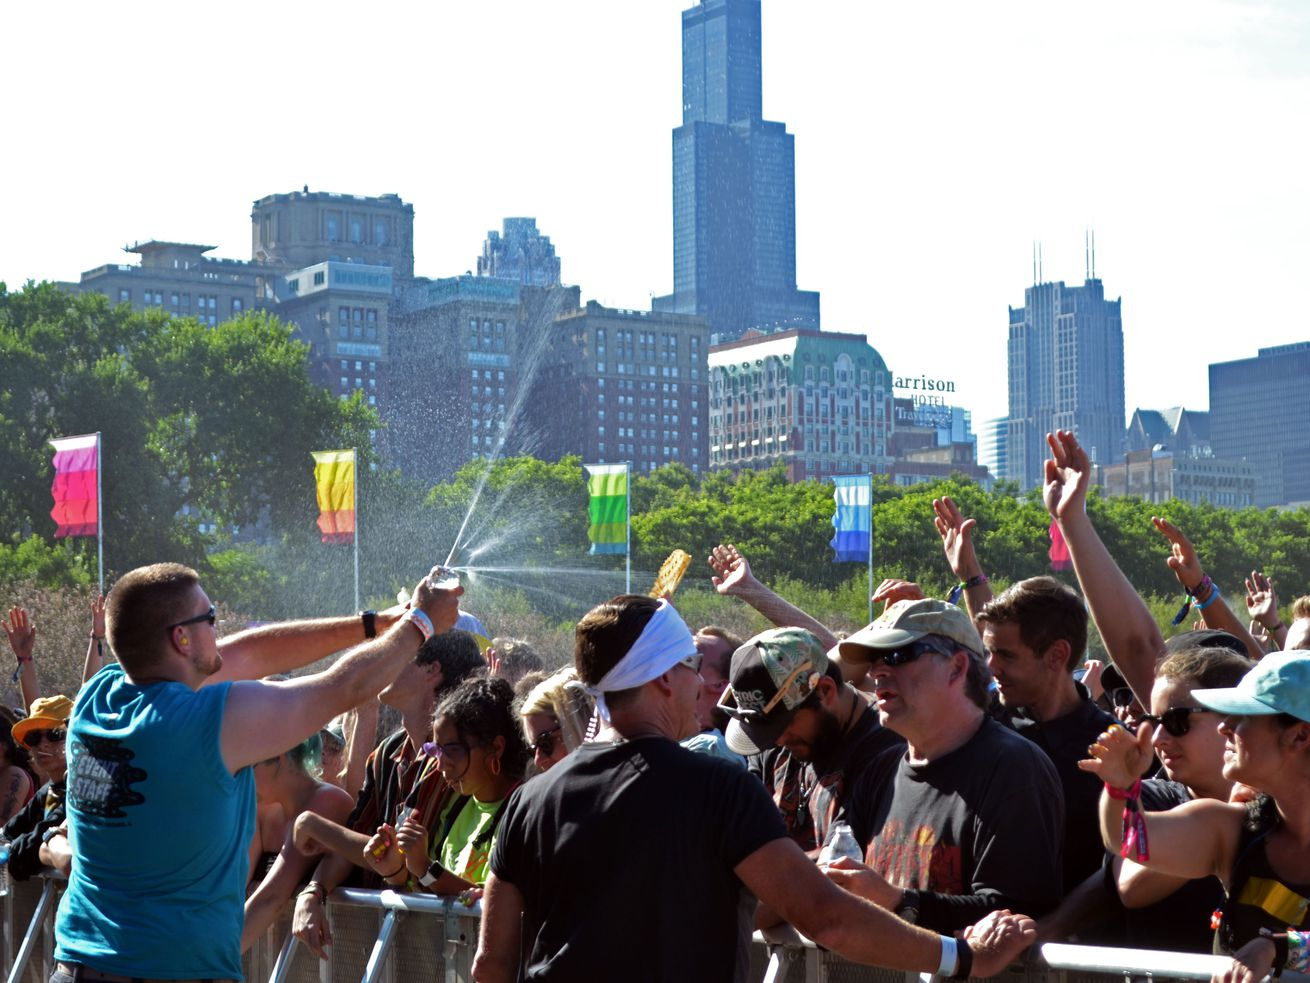 Lollapalooza staff cool the crowd with water as Gary Clark Jr. performs at Lollapalooza Saturday, August 3, 2019.